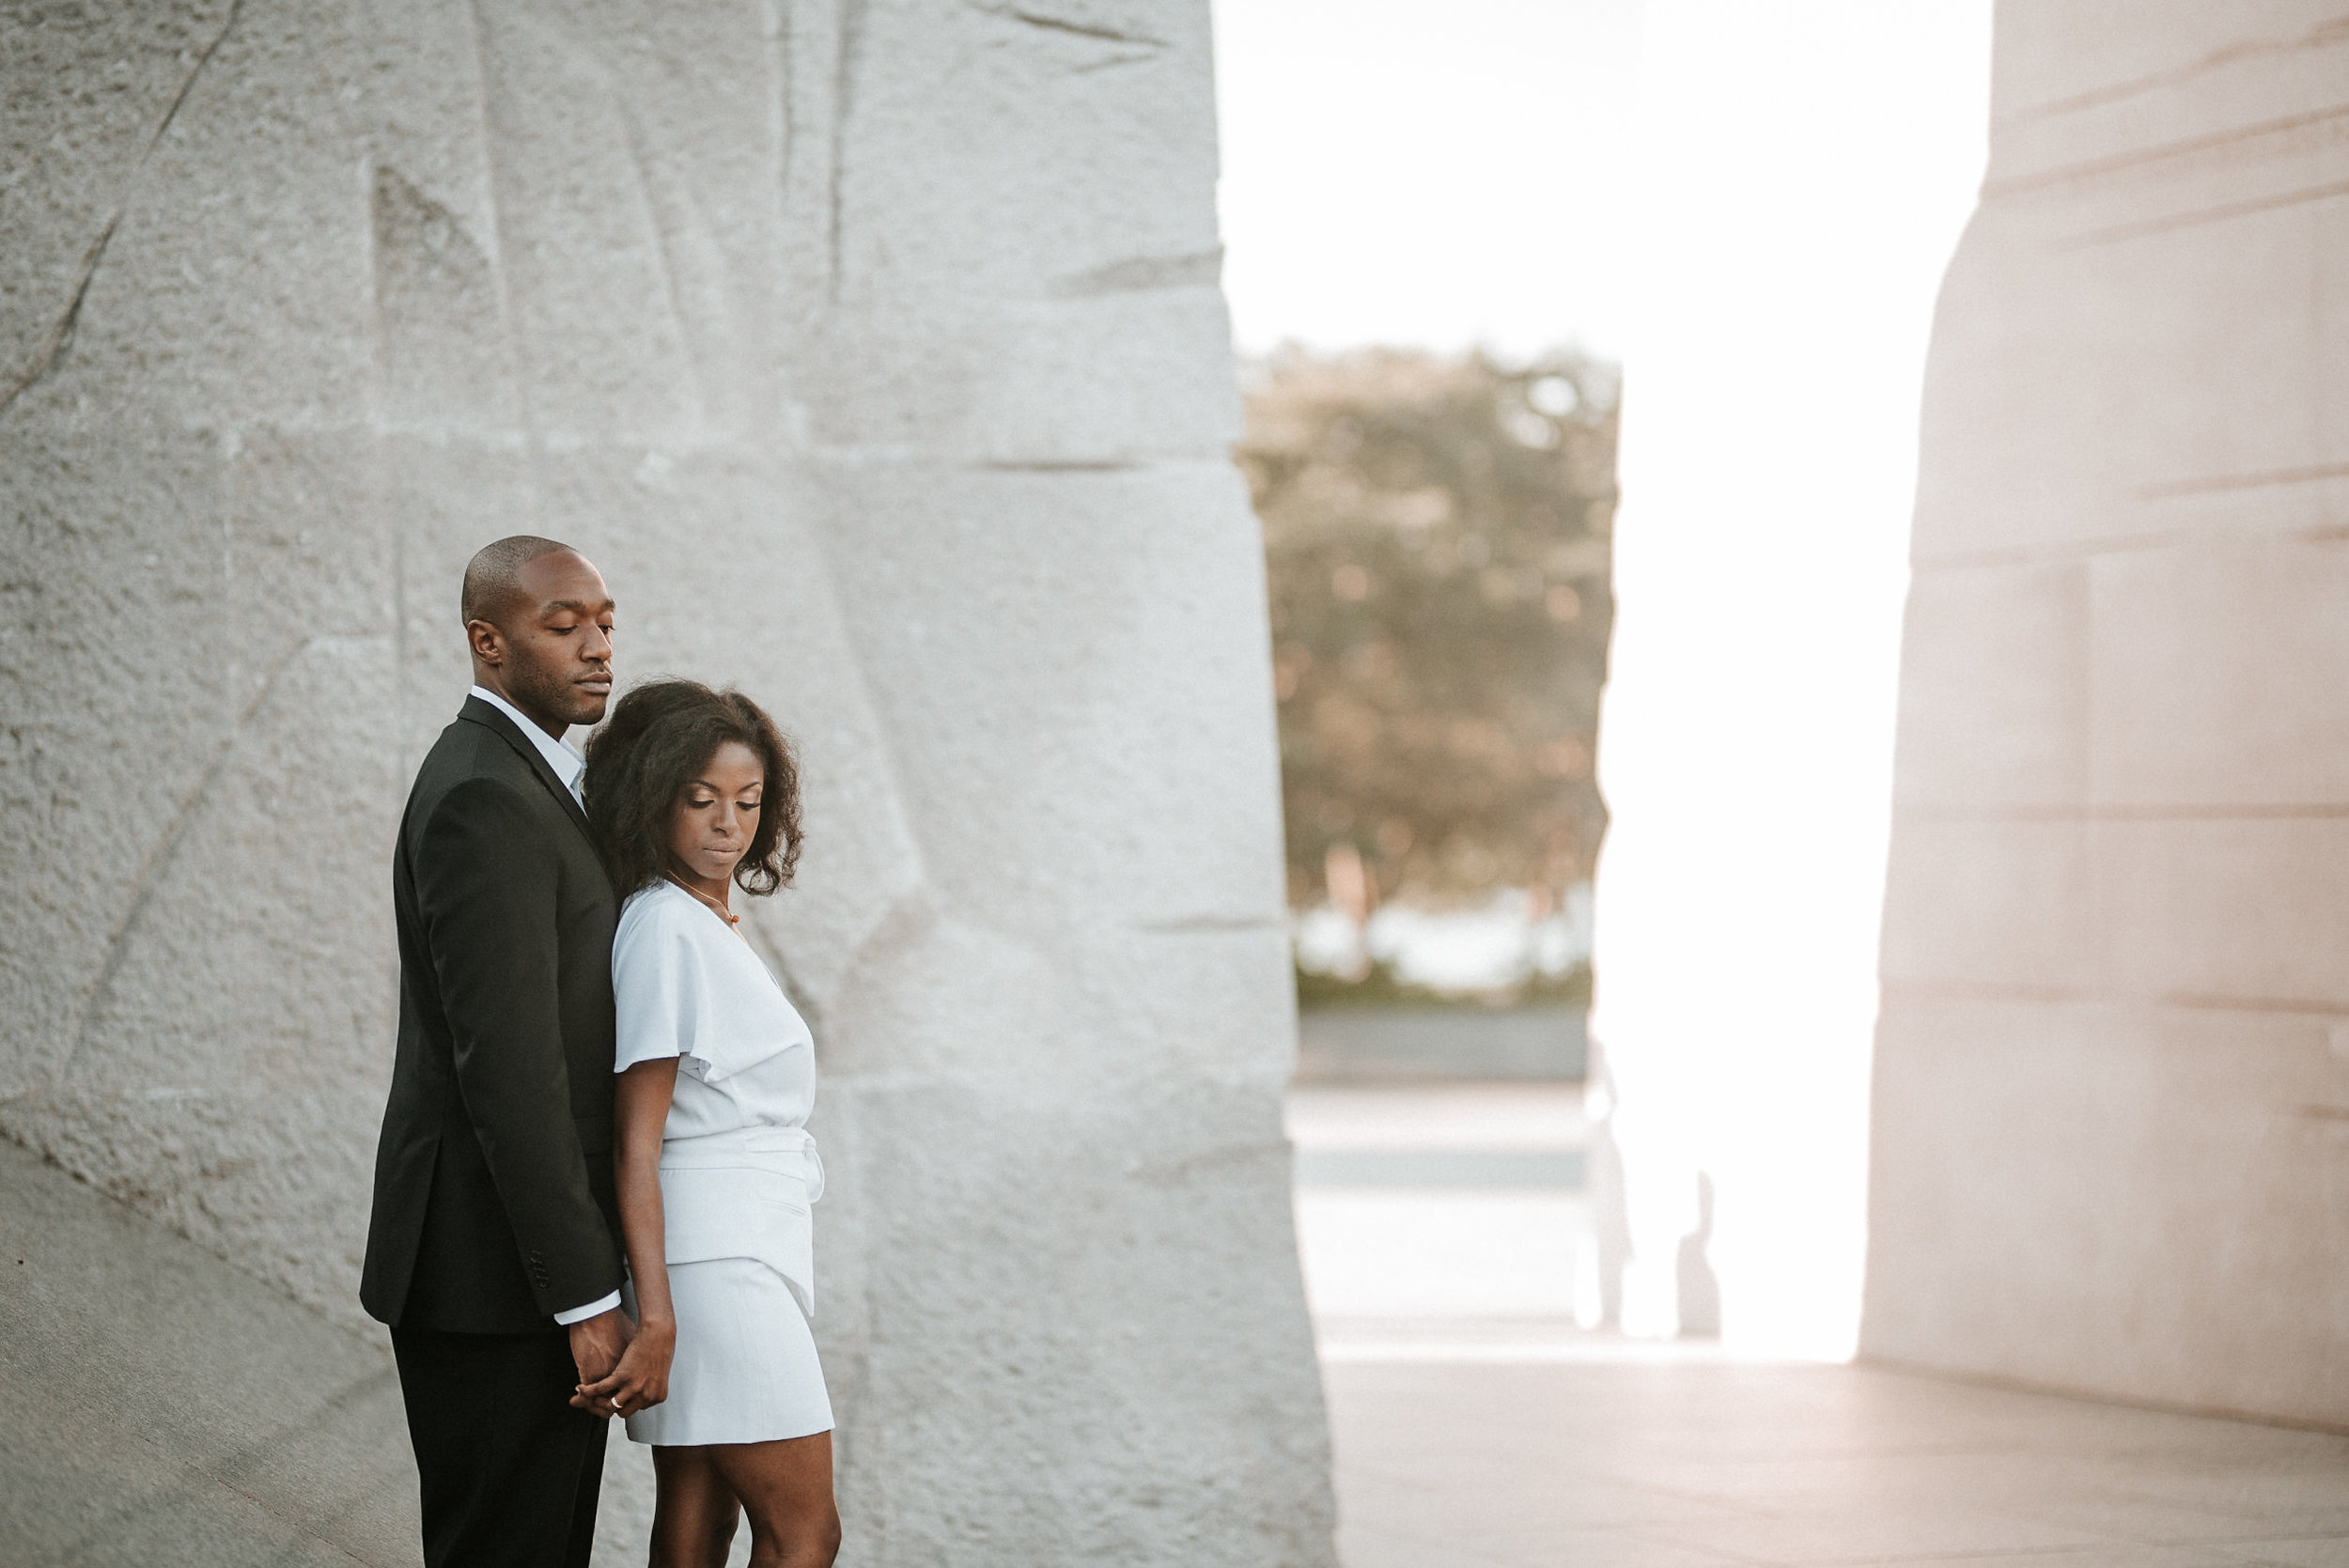 Engagement photo at Martin Luther King Jr Memorial